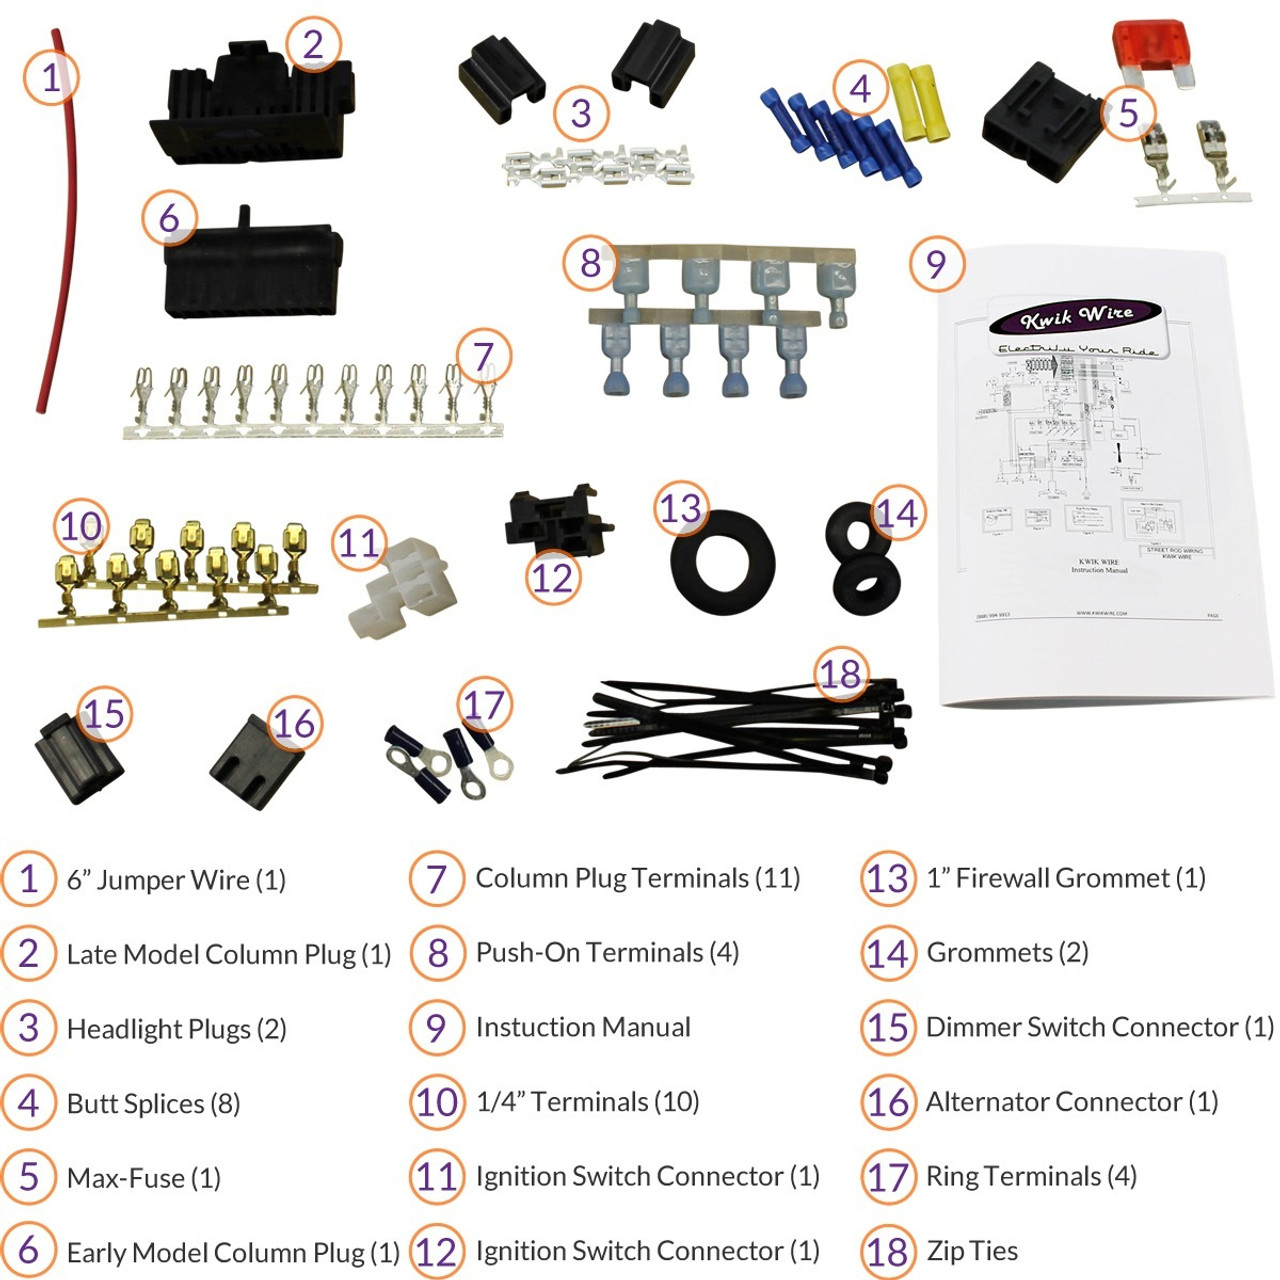 Standard Harness Install Kit Electrify Your Ride Wiring Firewall Grommet